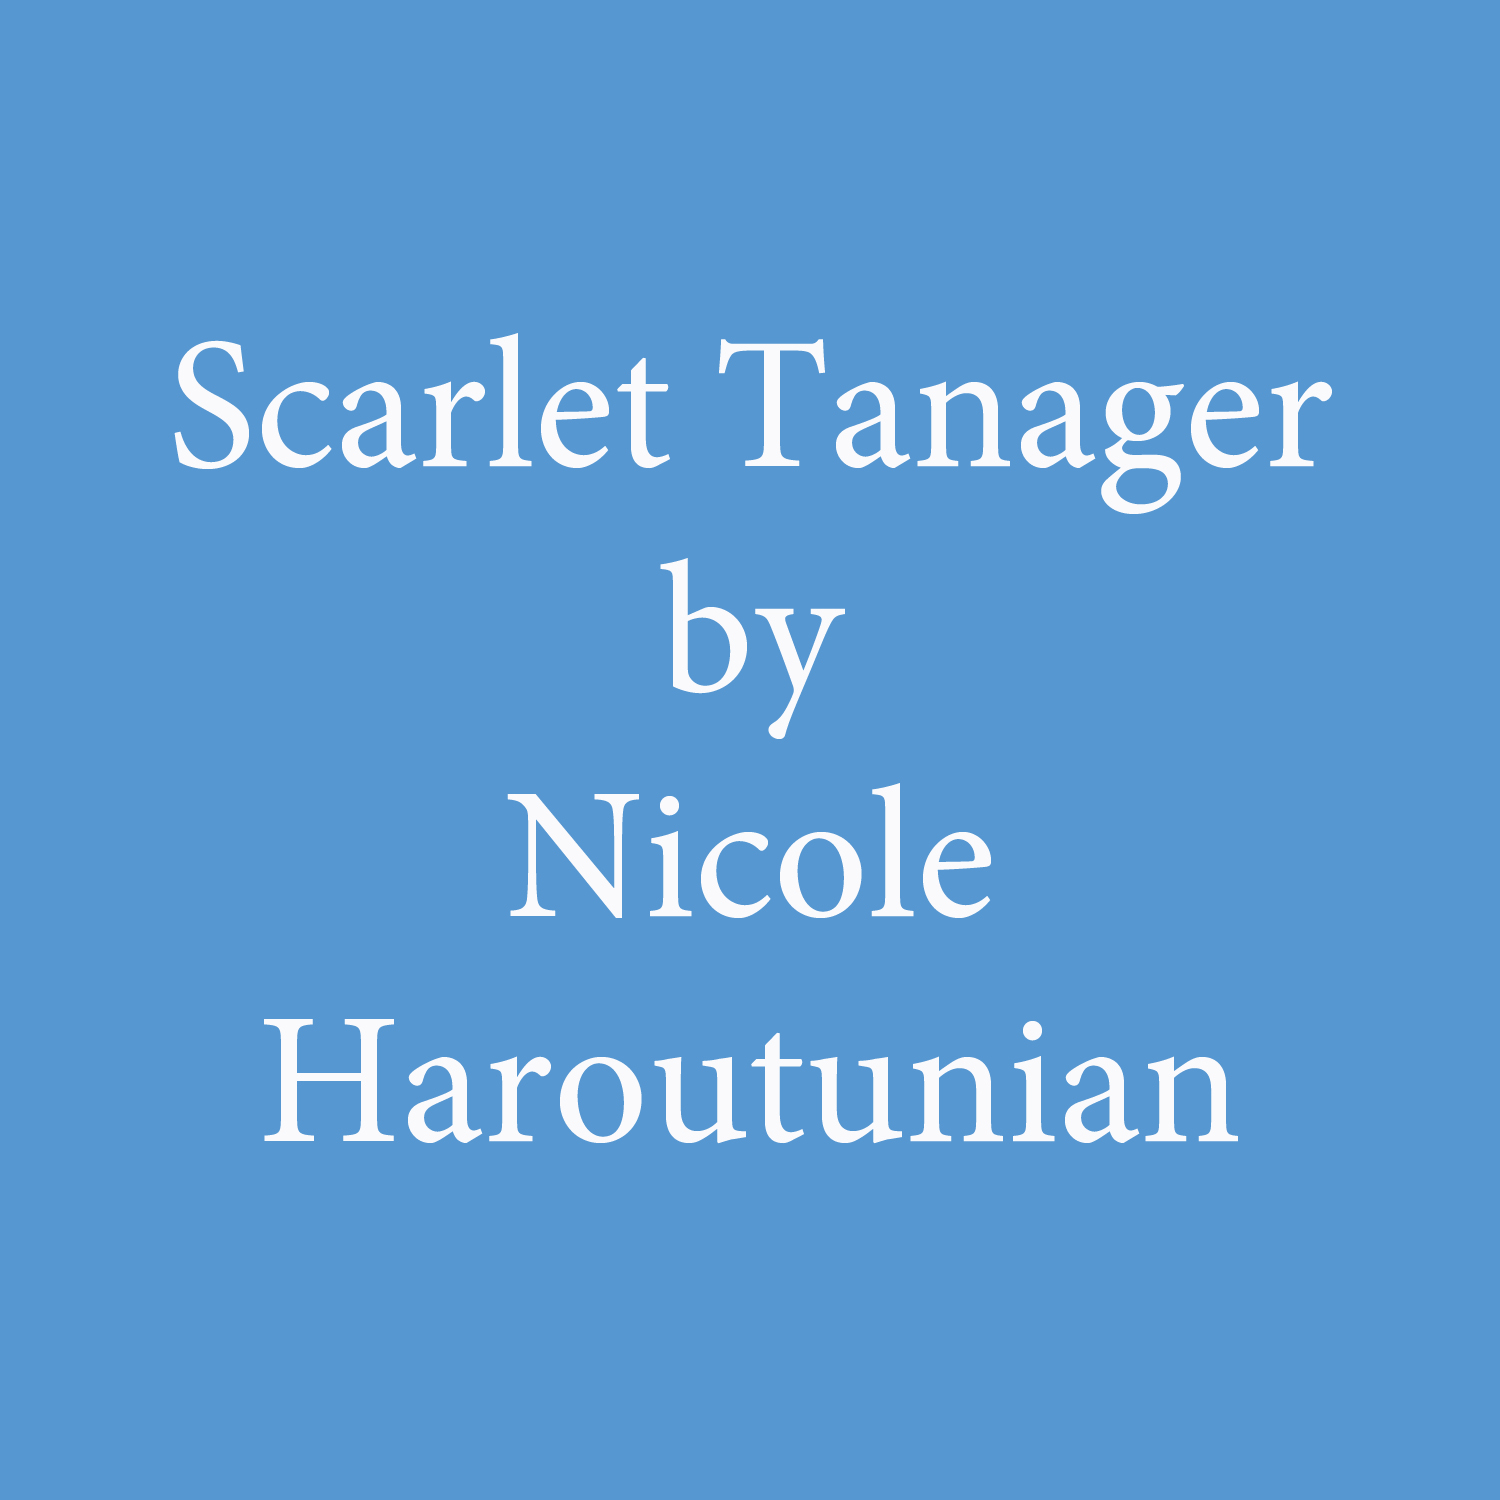 scarlet tanager by nicole haroutunian.jpg